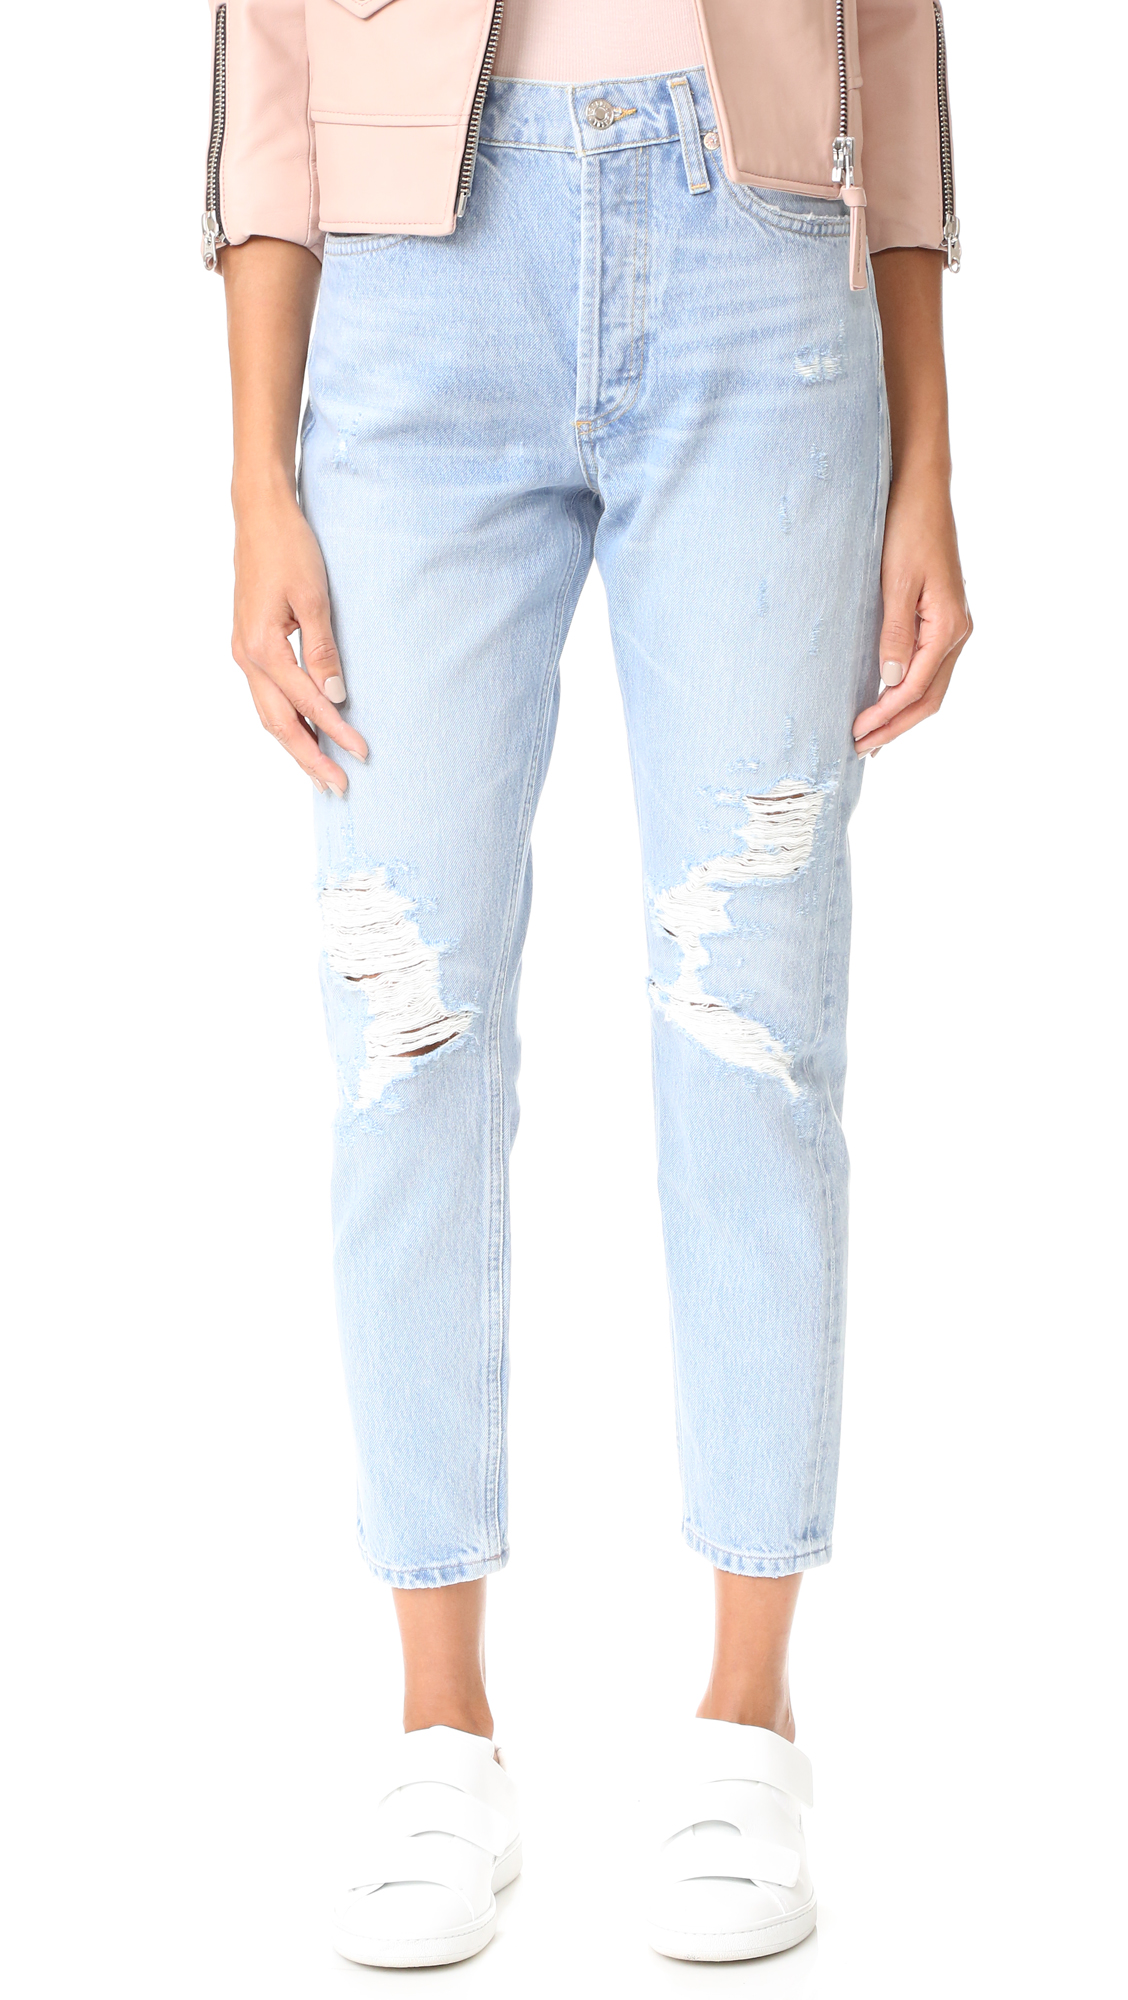 Agolde Jamie High Rise Classic Jeans - Ever-More at Shopbop